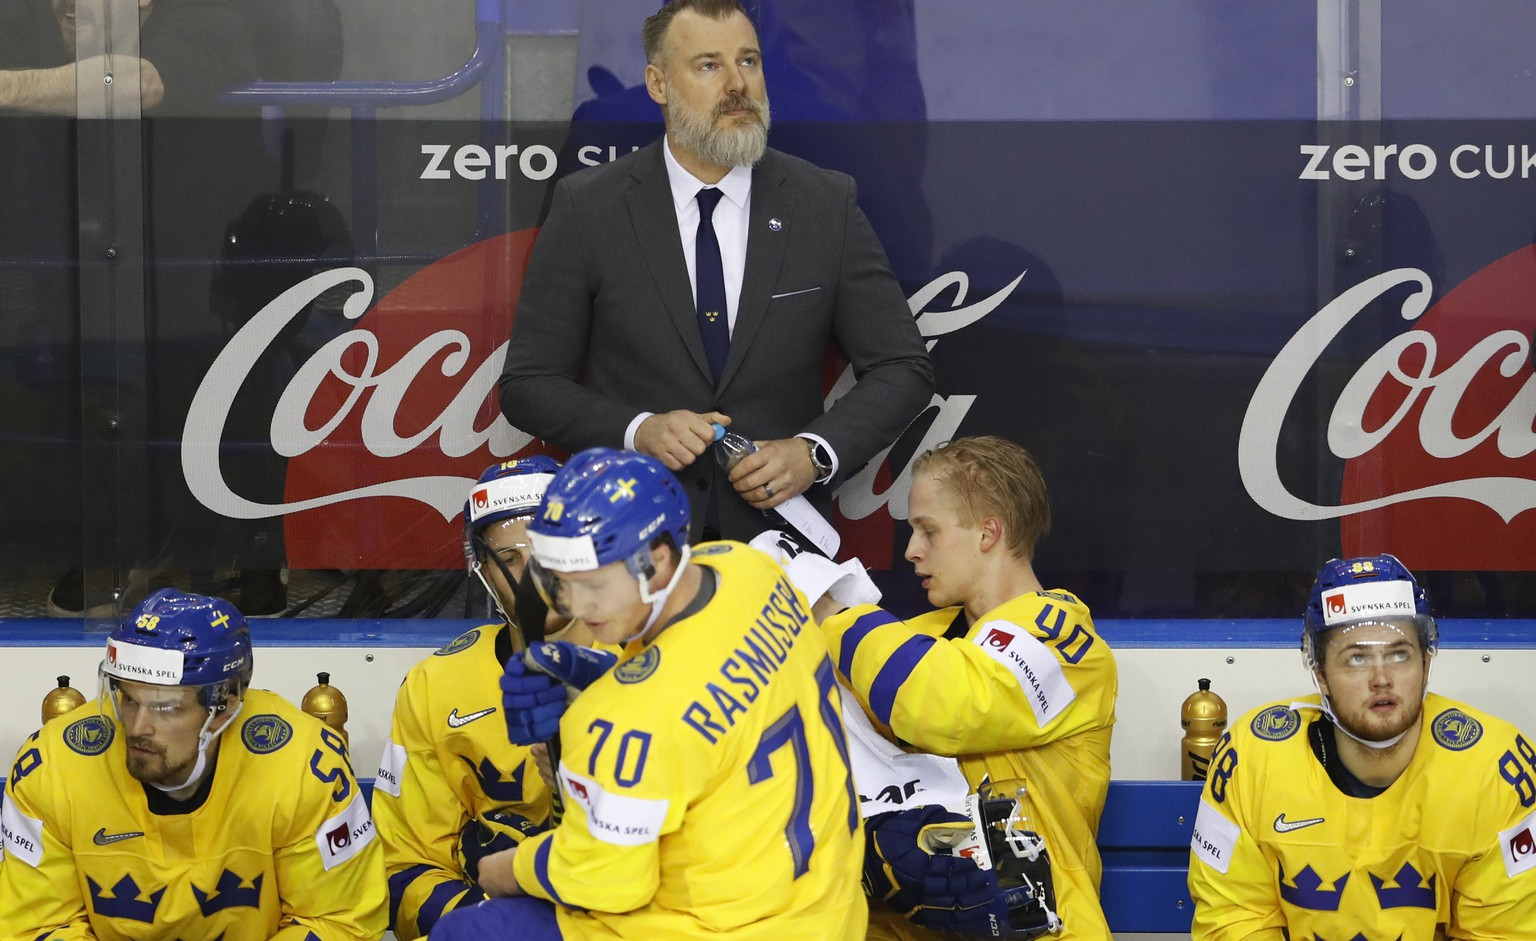 Sweden's head coach Rikard Groenborg stands by the bench during the Ice Hockey World Championships quarterfinal match between Finland and Sweden at the Steel Arena in Kosice, Slovakia, Thursday, May 23, 2019. (AP Photo/Petr David Josek)